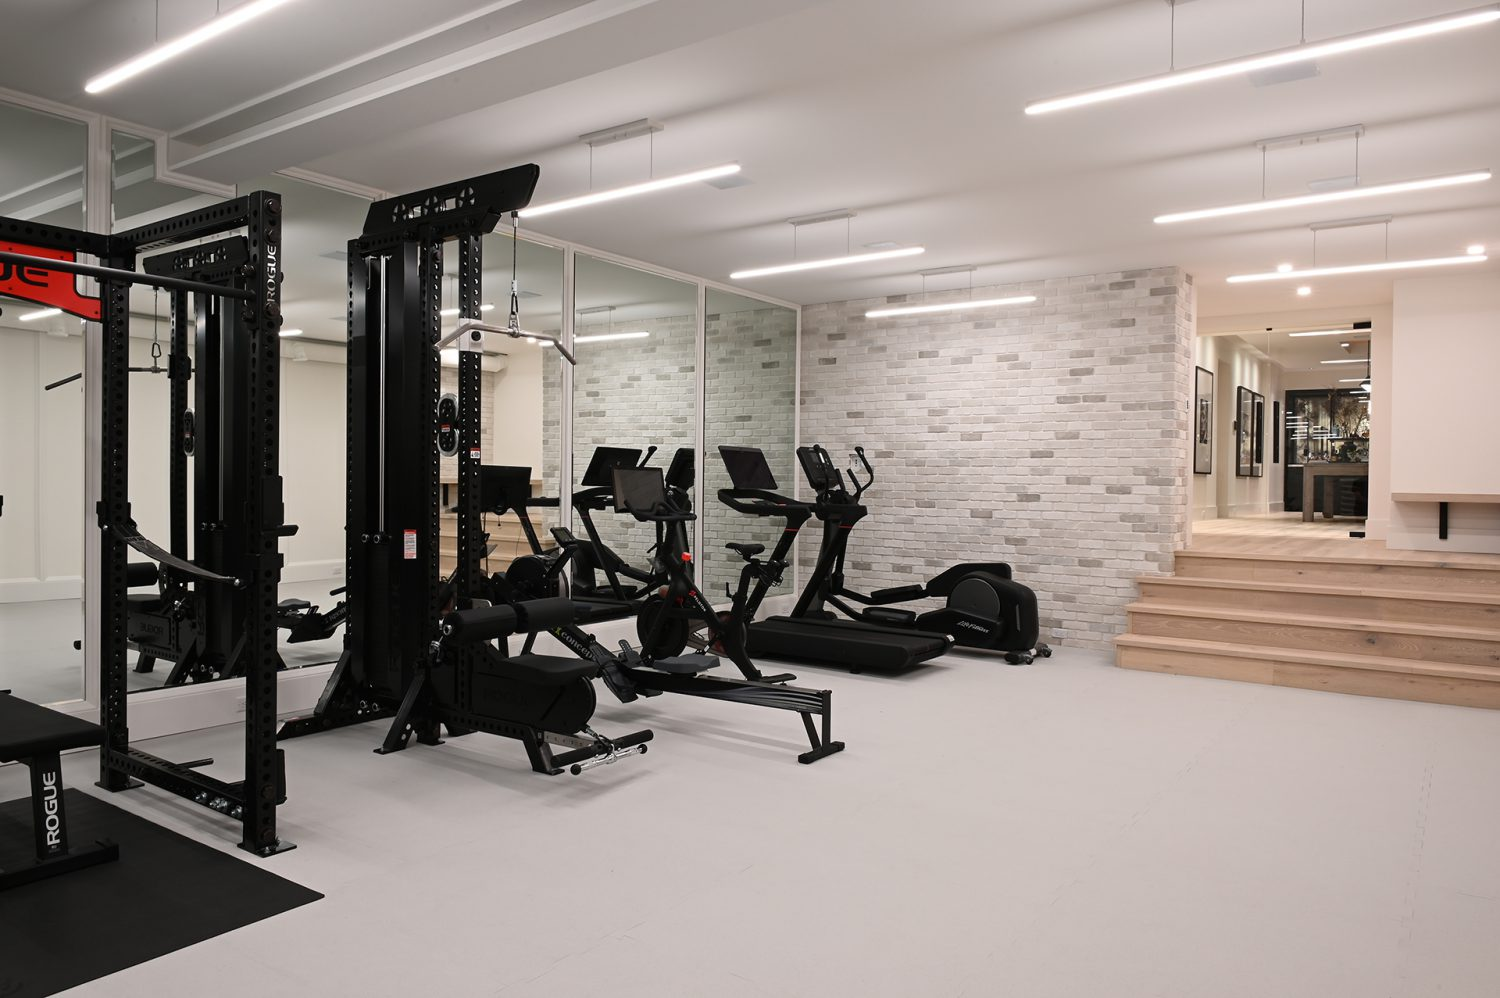 Ferme Moderne basement home gym designed by Midland Premium Properties in Vancouver, BC